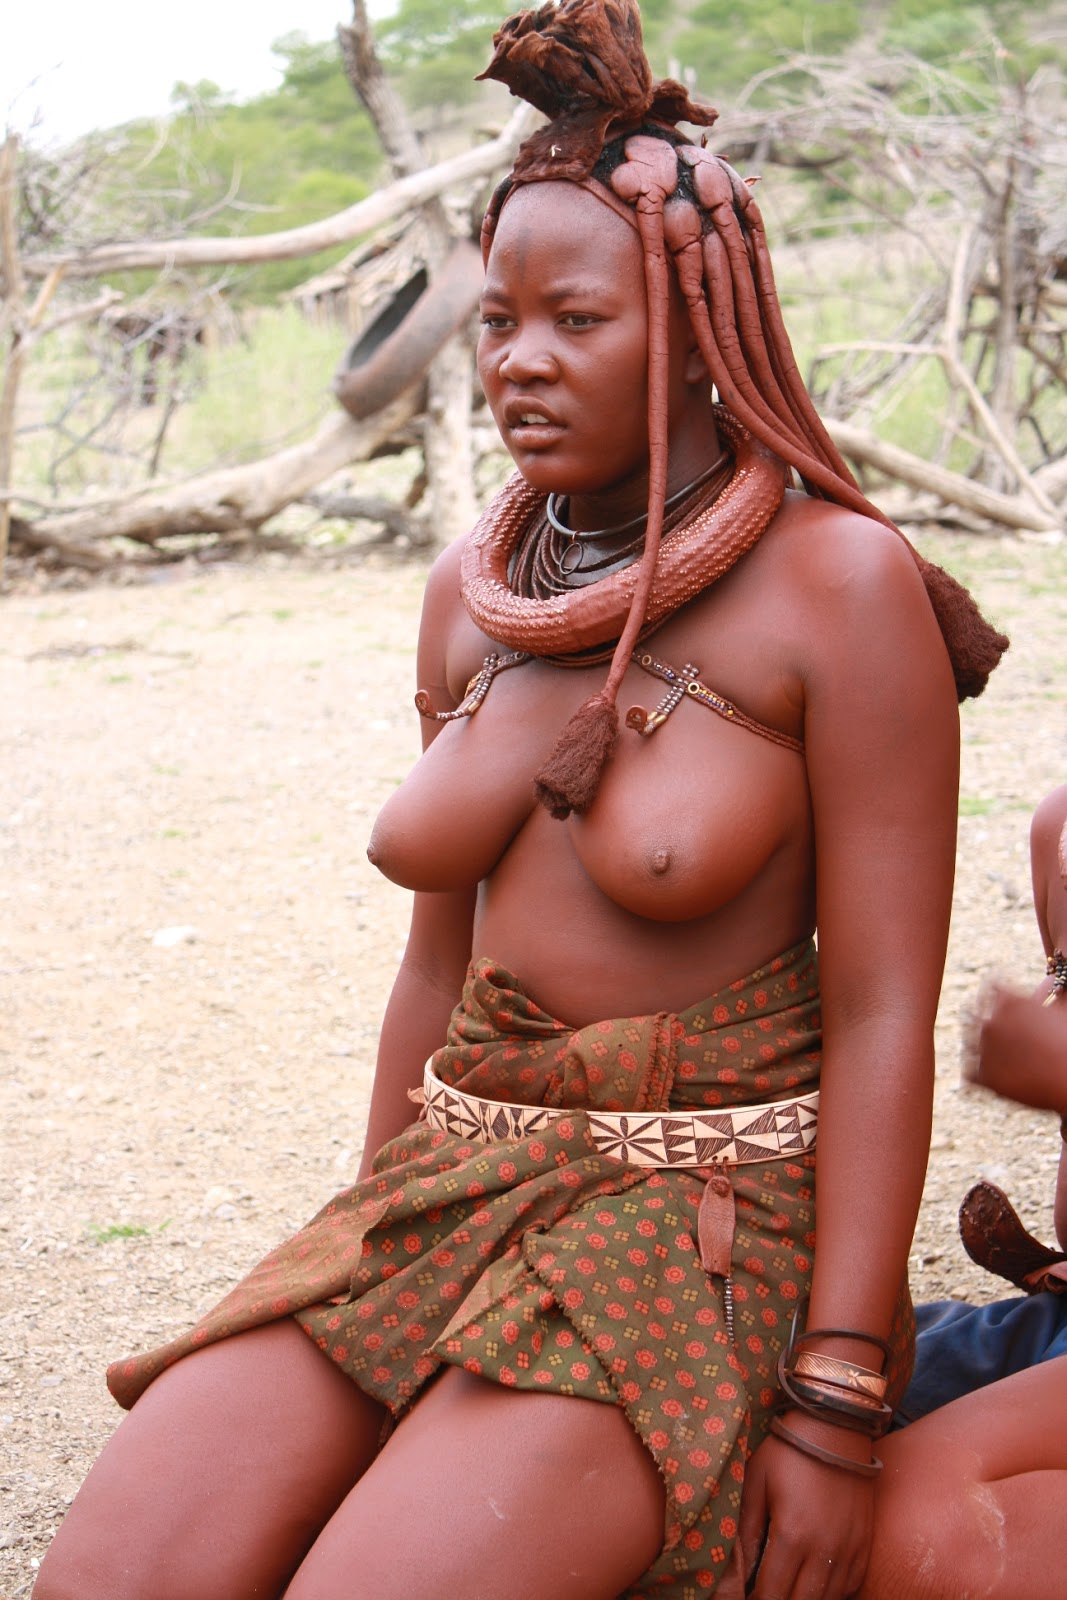 Apologise, African nude girl hd good question